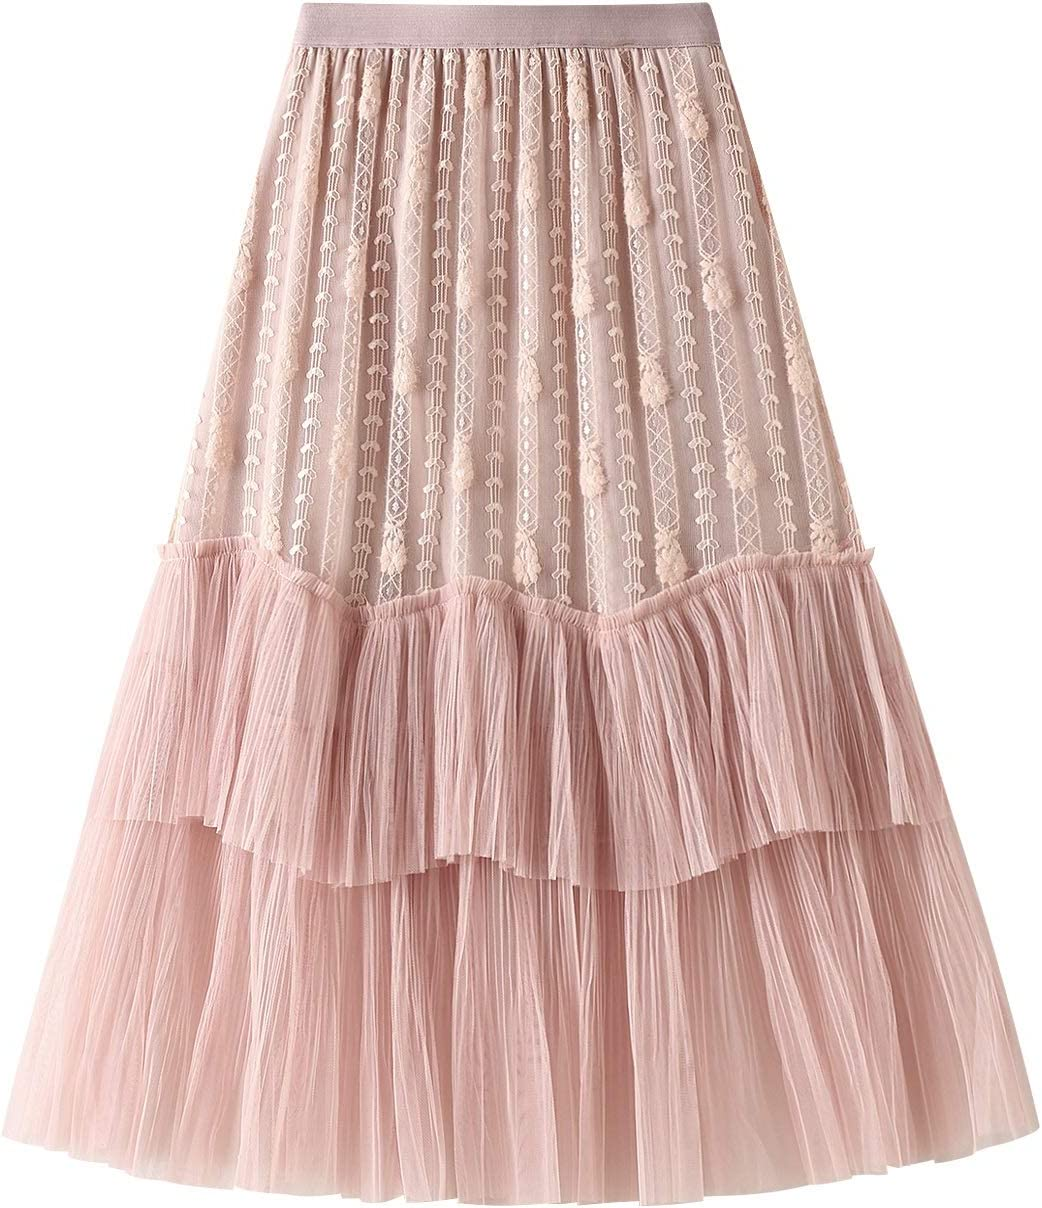 Women's Tulle Skirt Maxi Long A Line High Waist Mesh Layered Skirt Floral Lace Pleated Mesh Midi Skirt Party Tutu Skirt (Color : Pink, Size : One Size)